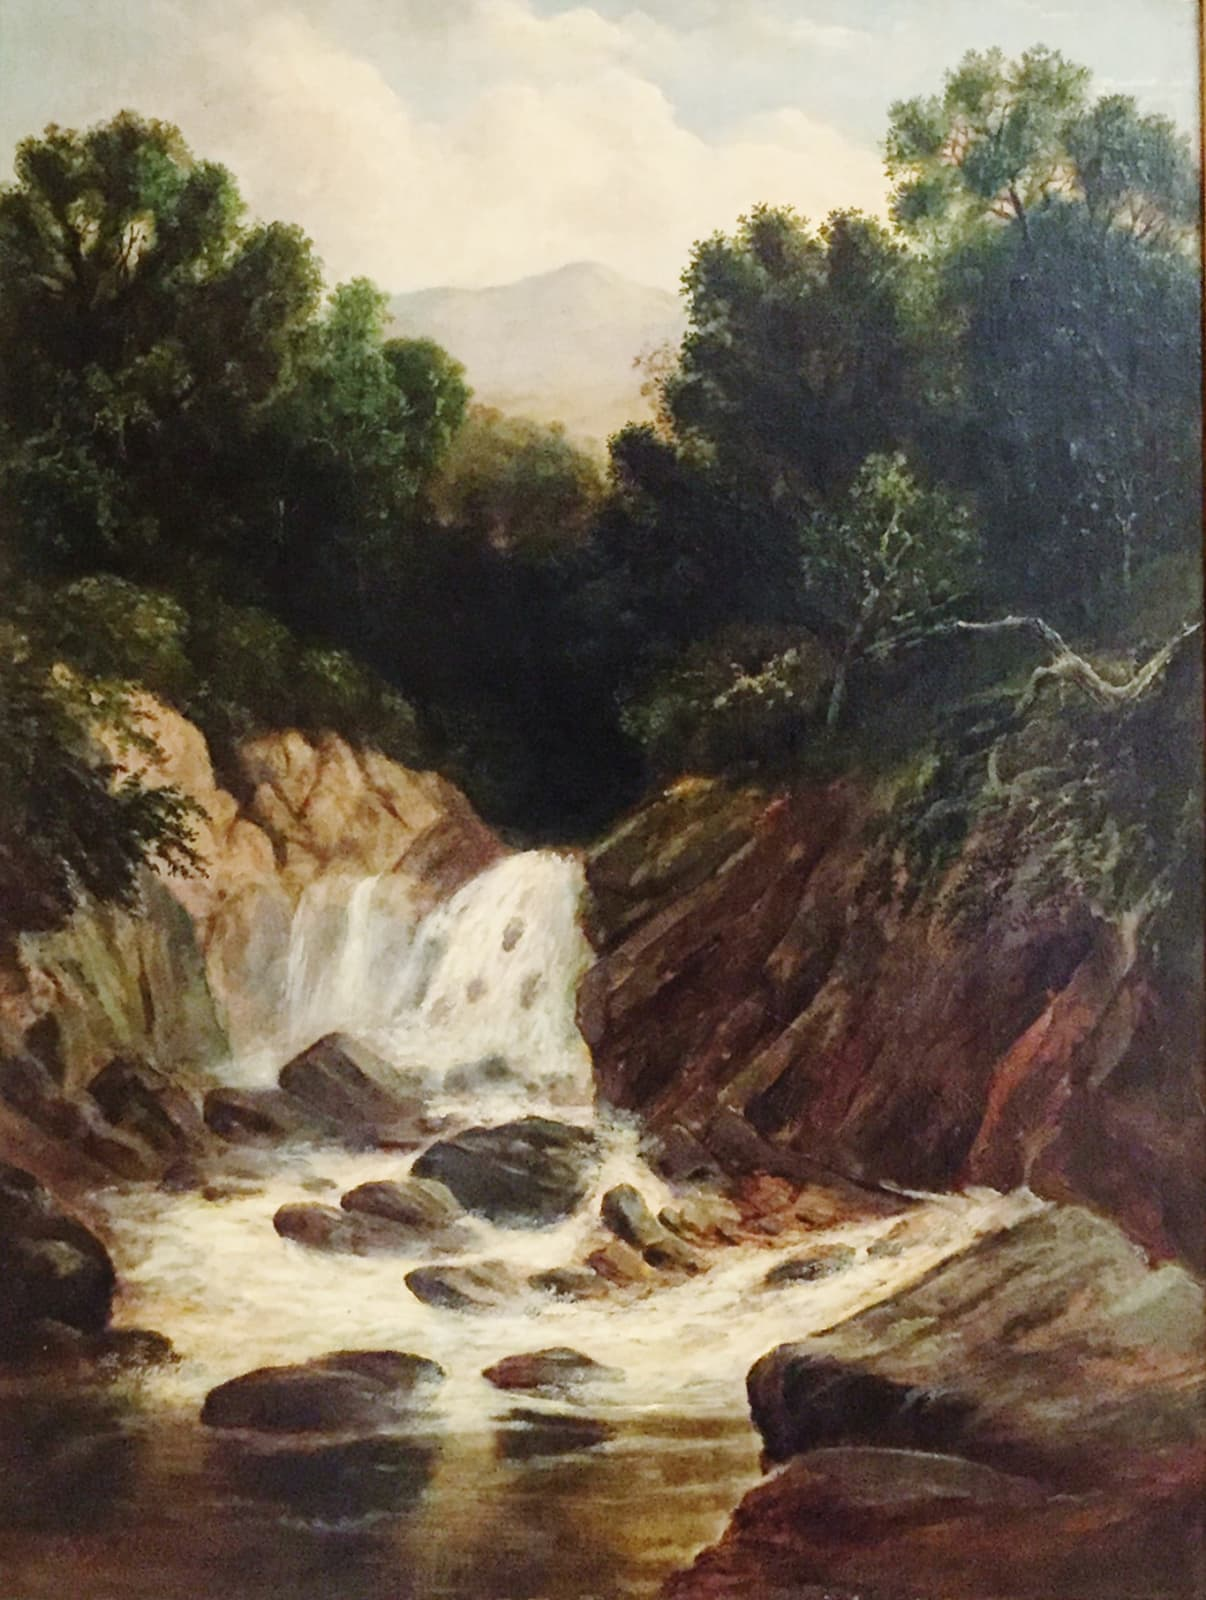 Robert Scott Duncanson, Landscape (Waterfall with Rock Lion Formation), c. 1865